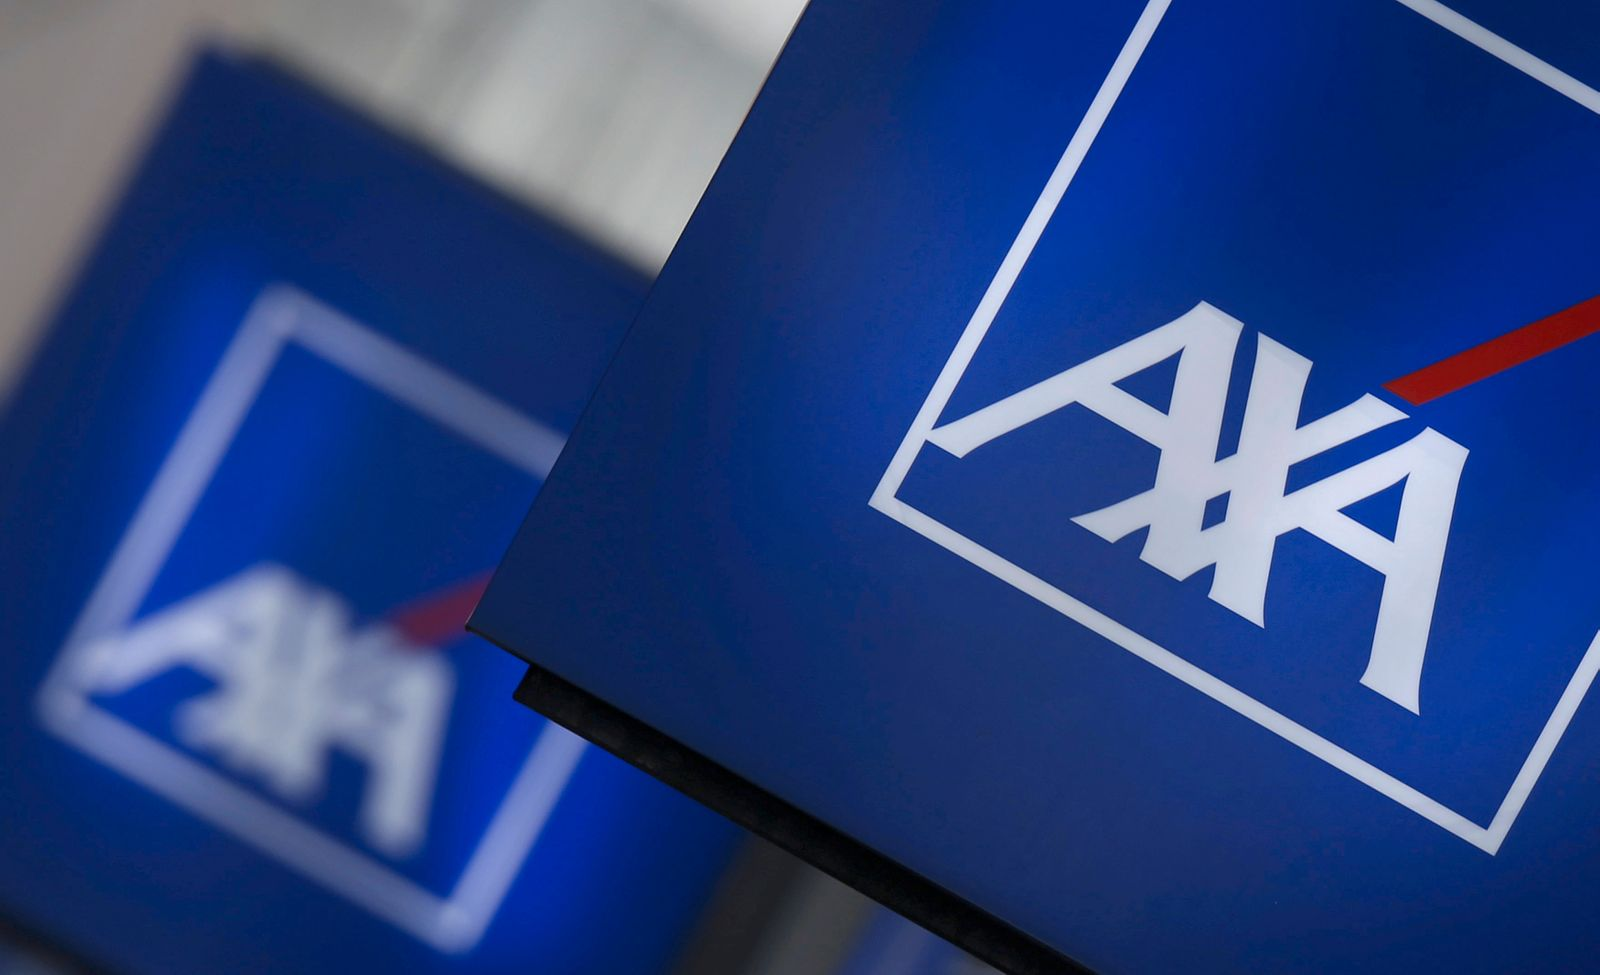 File photo of logos of France's biggest insurer Axa are seen on a building in Nanterre